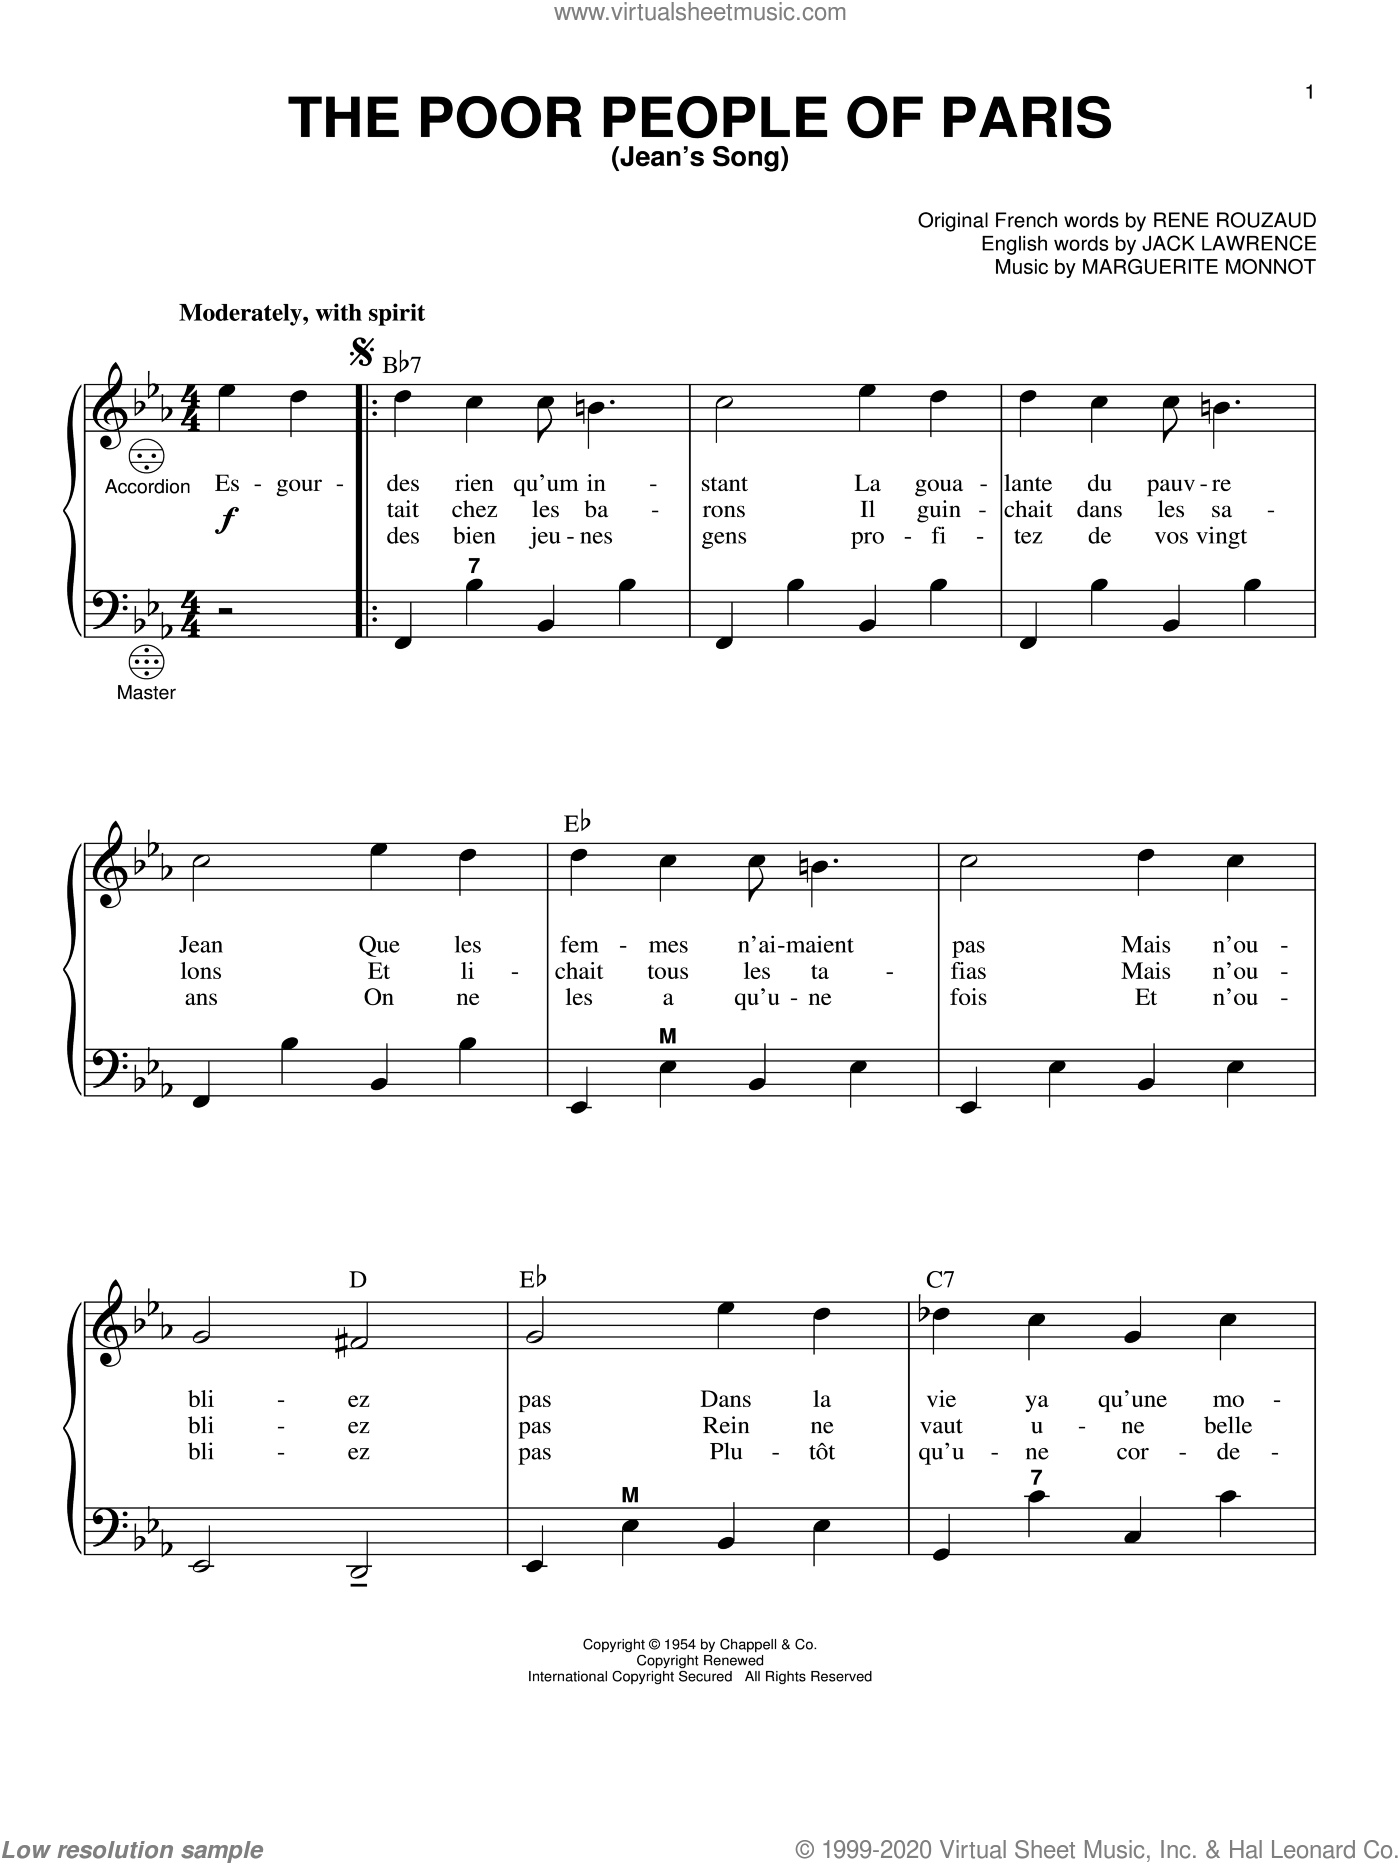 The Poor People Of Paris (Jean's Song) sheet music for accordion by Jack Lawrence, Gary Meisner, Marguerite Monnot and Rene Rouzaud, intermediate skill level